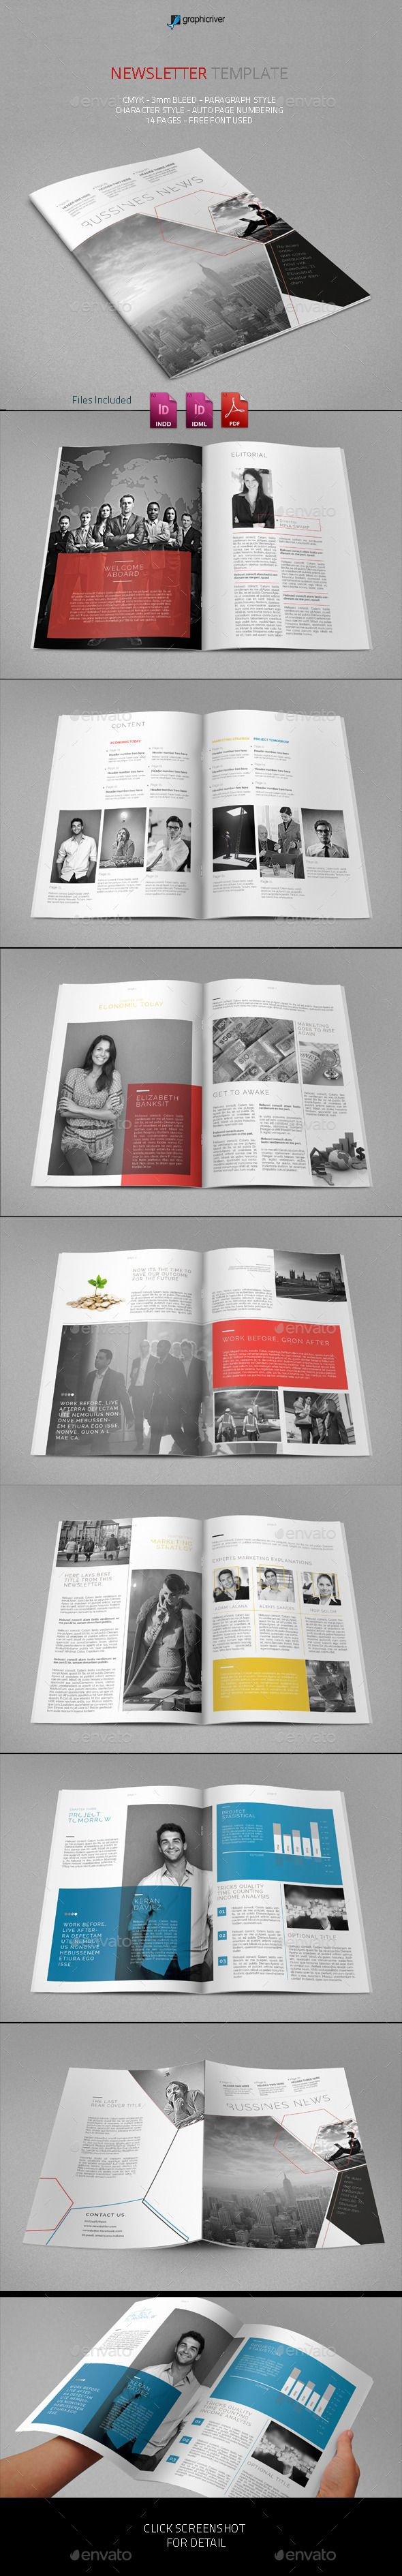 Best Print Newsletter Templates Images On   Print